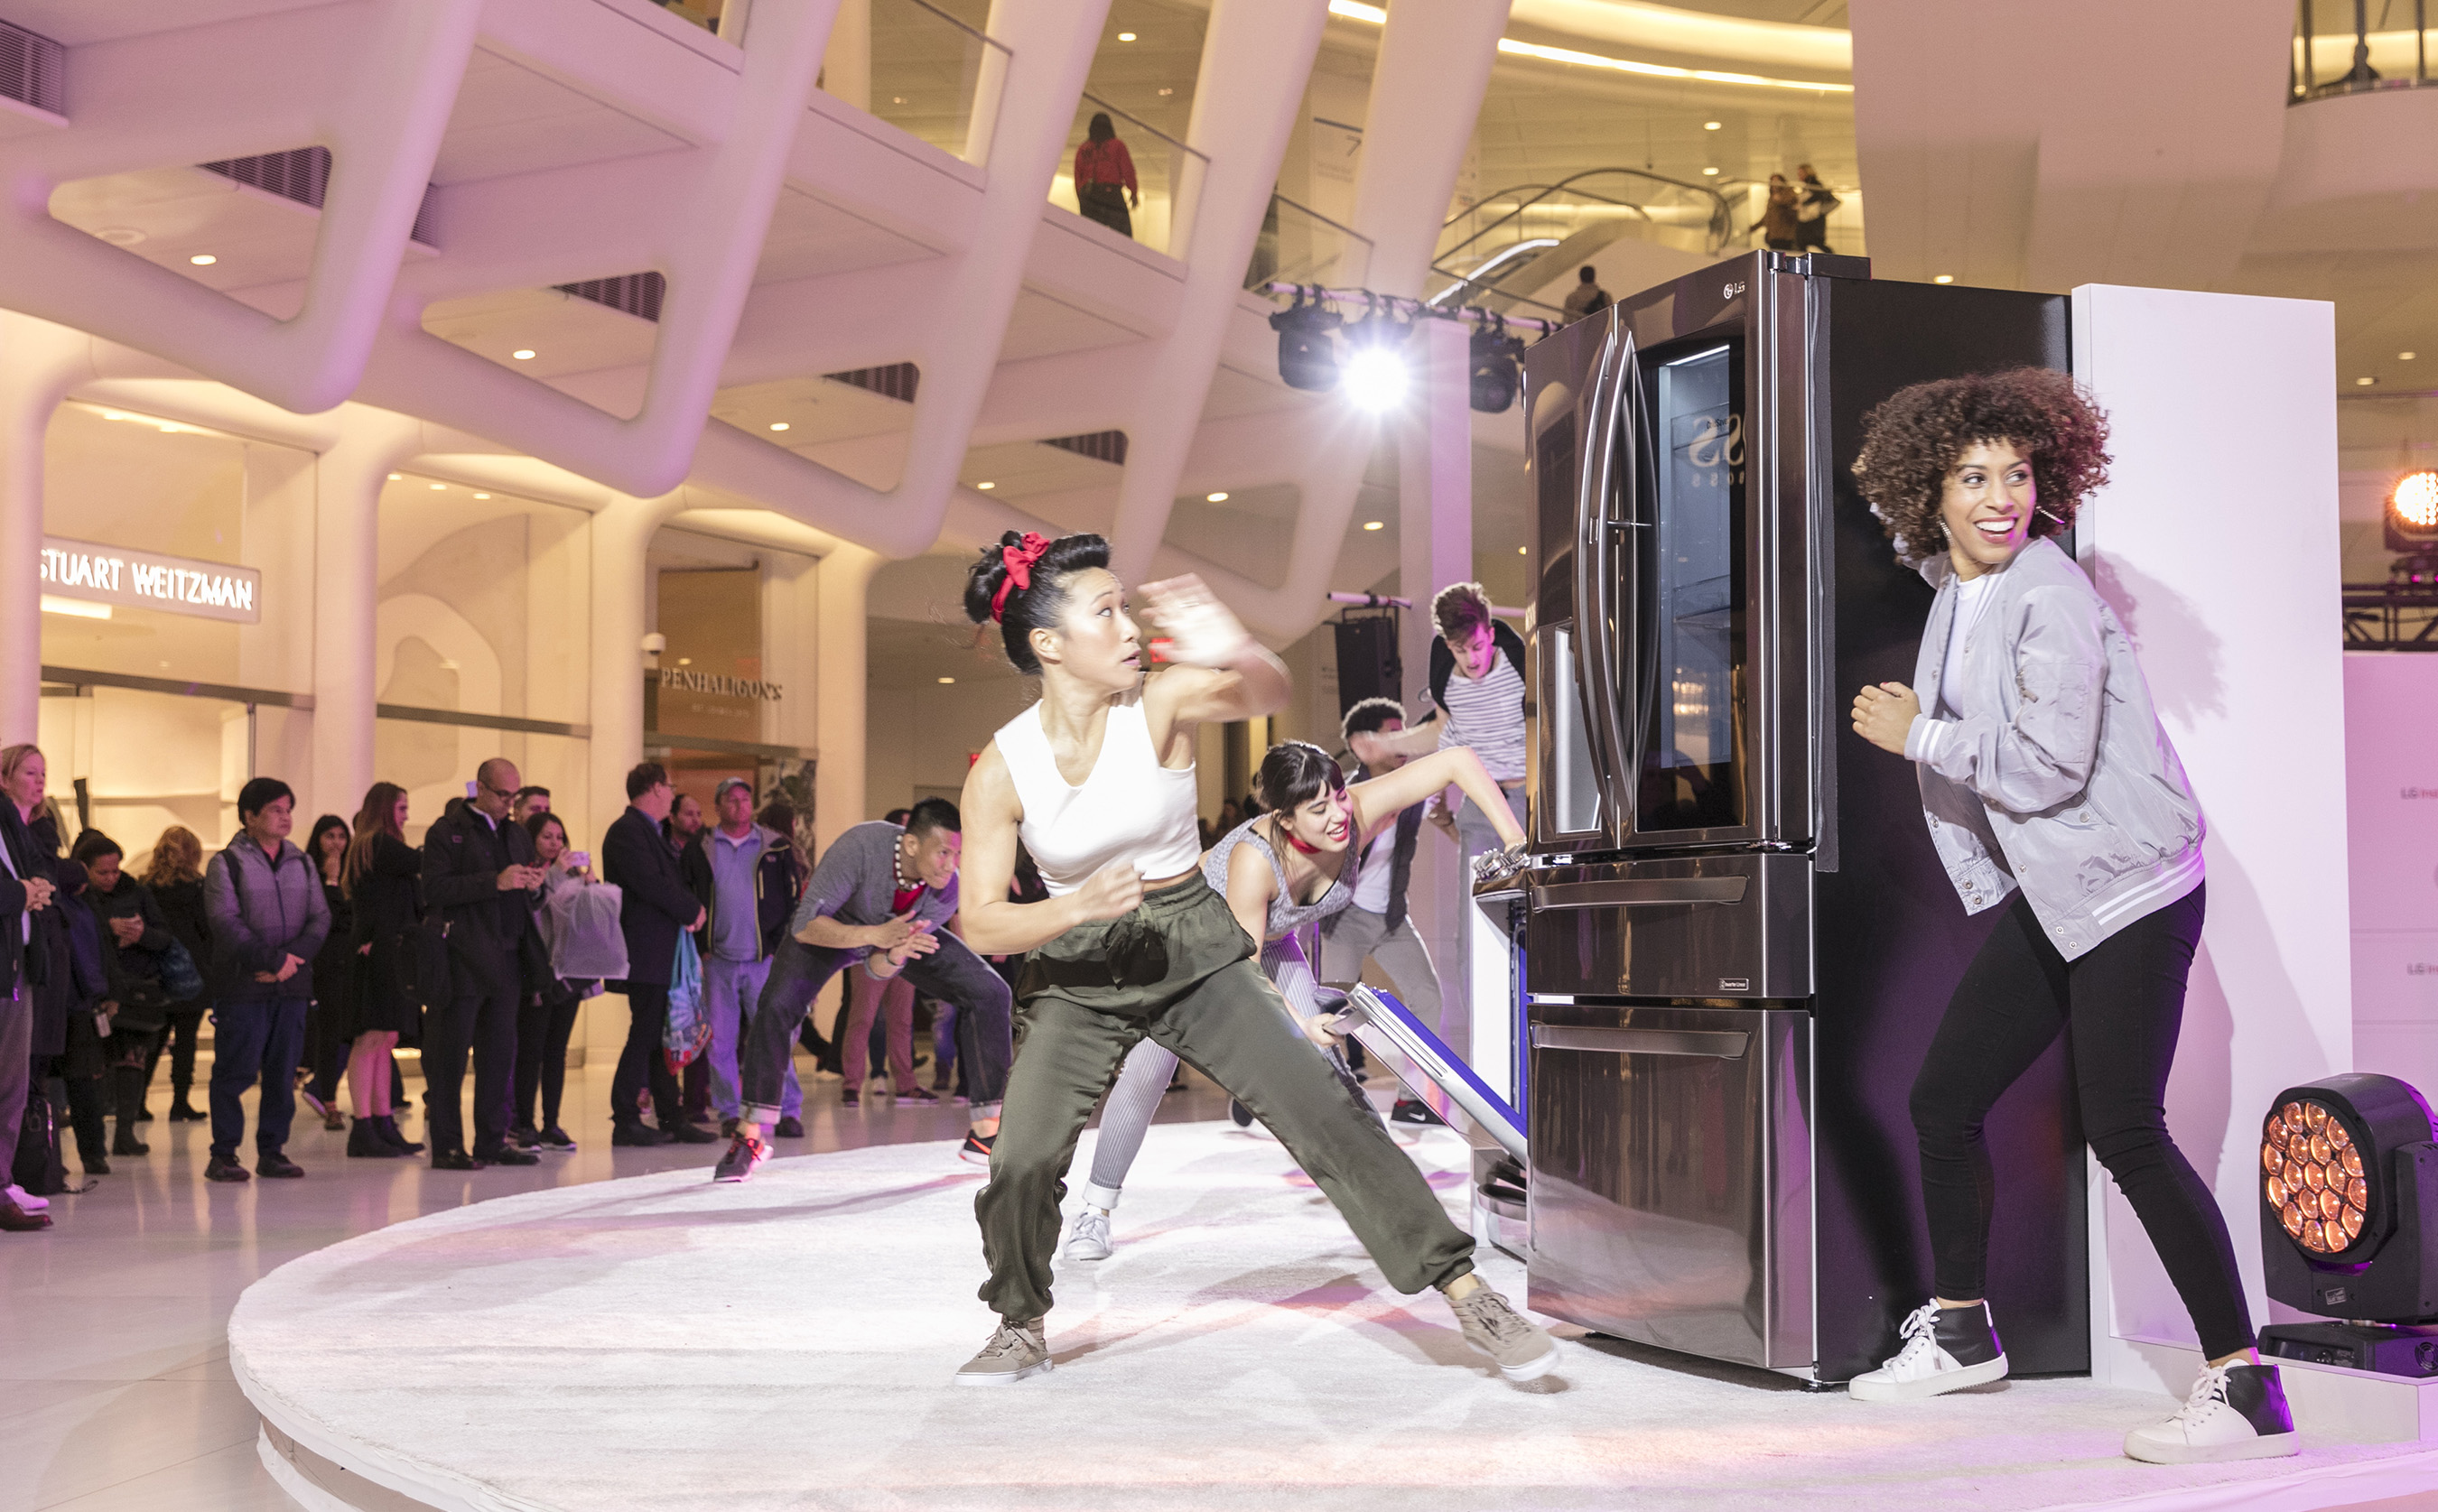 LG Electronics celebrated the expansion of its InstaView Refrigerator line at an event on March 7, 2017 at The Oculus in New York by transforming appliances into musical instruments and bringing a series of surprise musical and dance performances to thousands of consumers at one of the nation's busiest transit and shopping hubs. LG InstaView refrigerators allow users to knock twice to illuminate a glass panel and see inside the refrigerator without opening the door. The performances began with two quick knocks on the refrigerator, triggering original musical renditions of pop songs produced by Andrew Huang, a music producer known for creating sounds with non-traditional instruments.